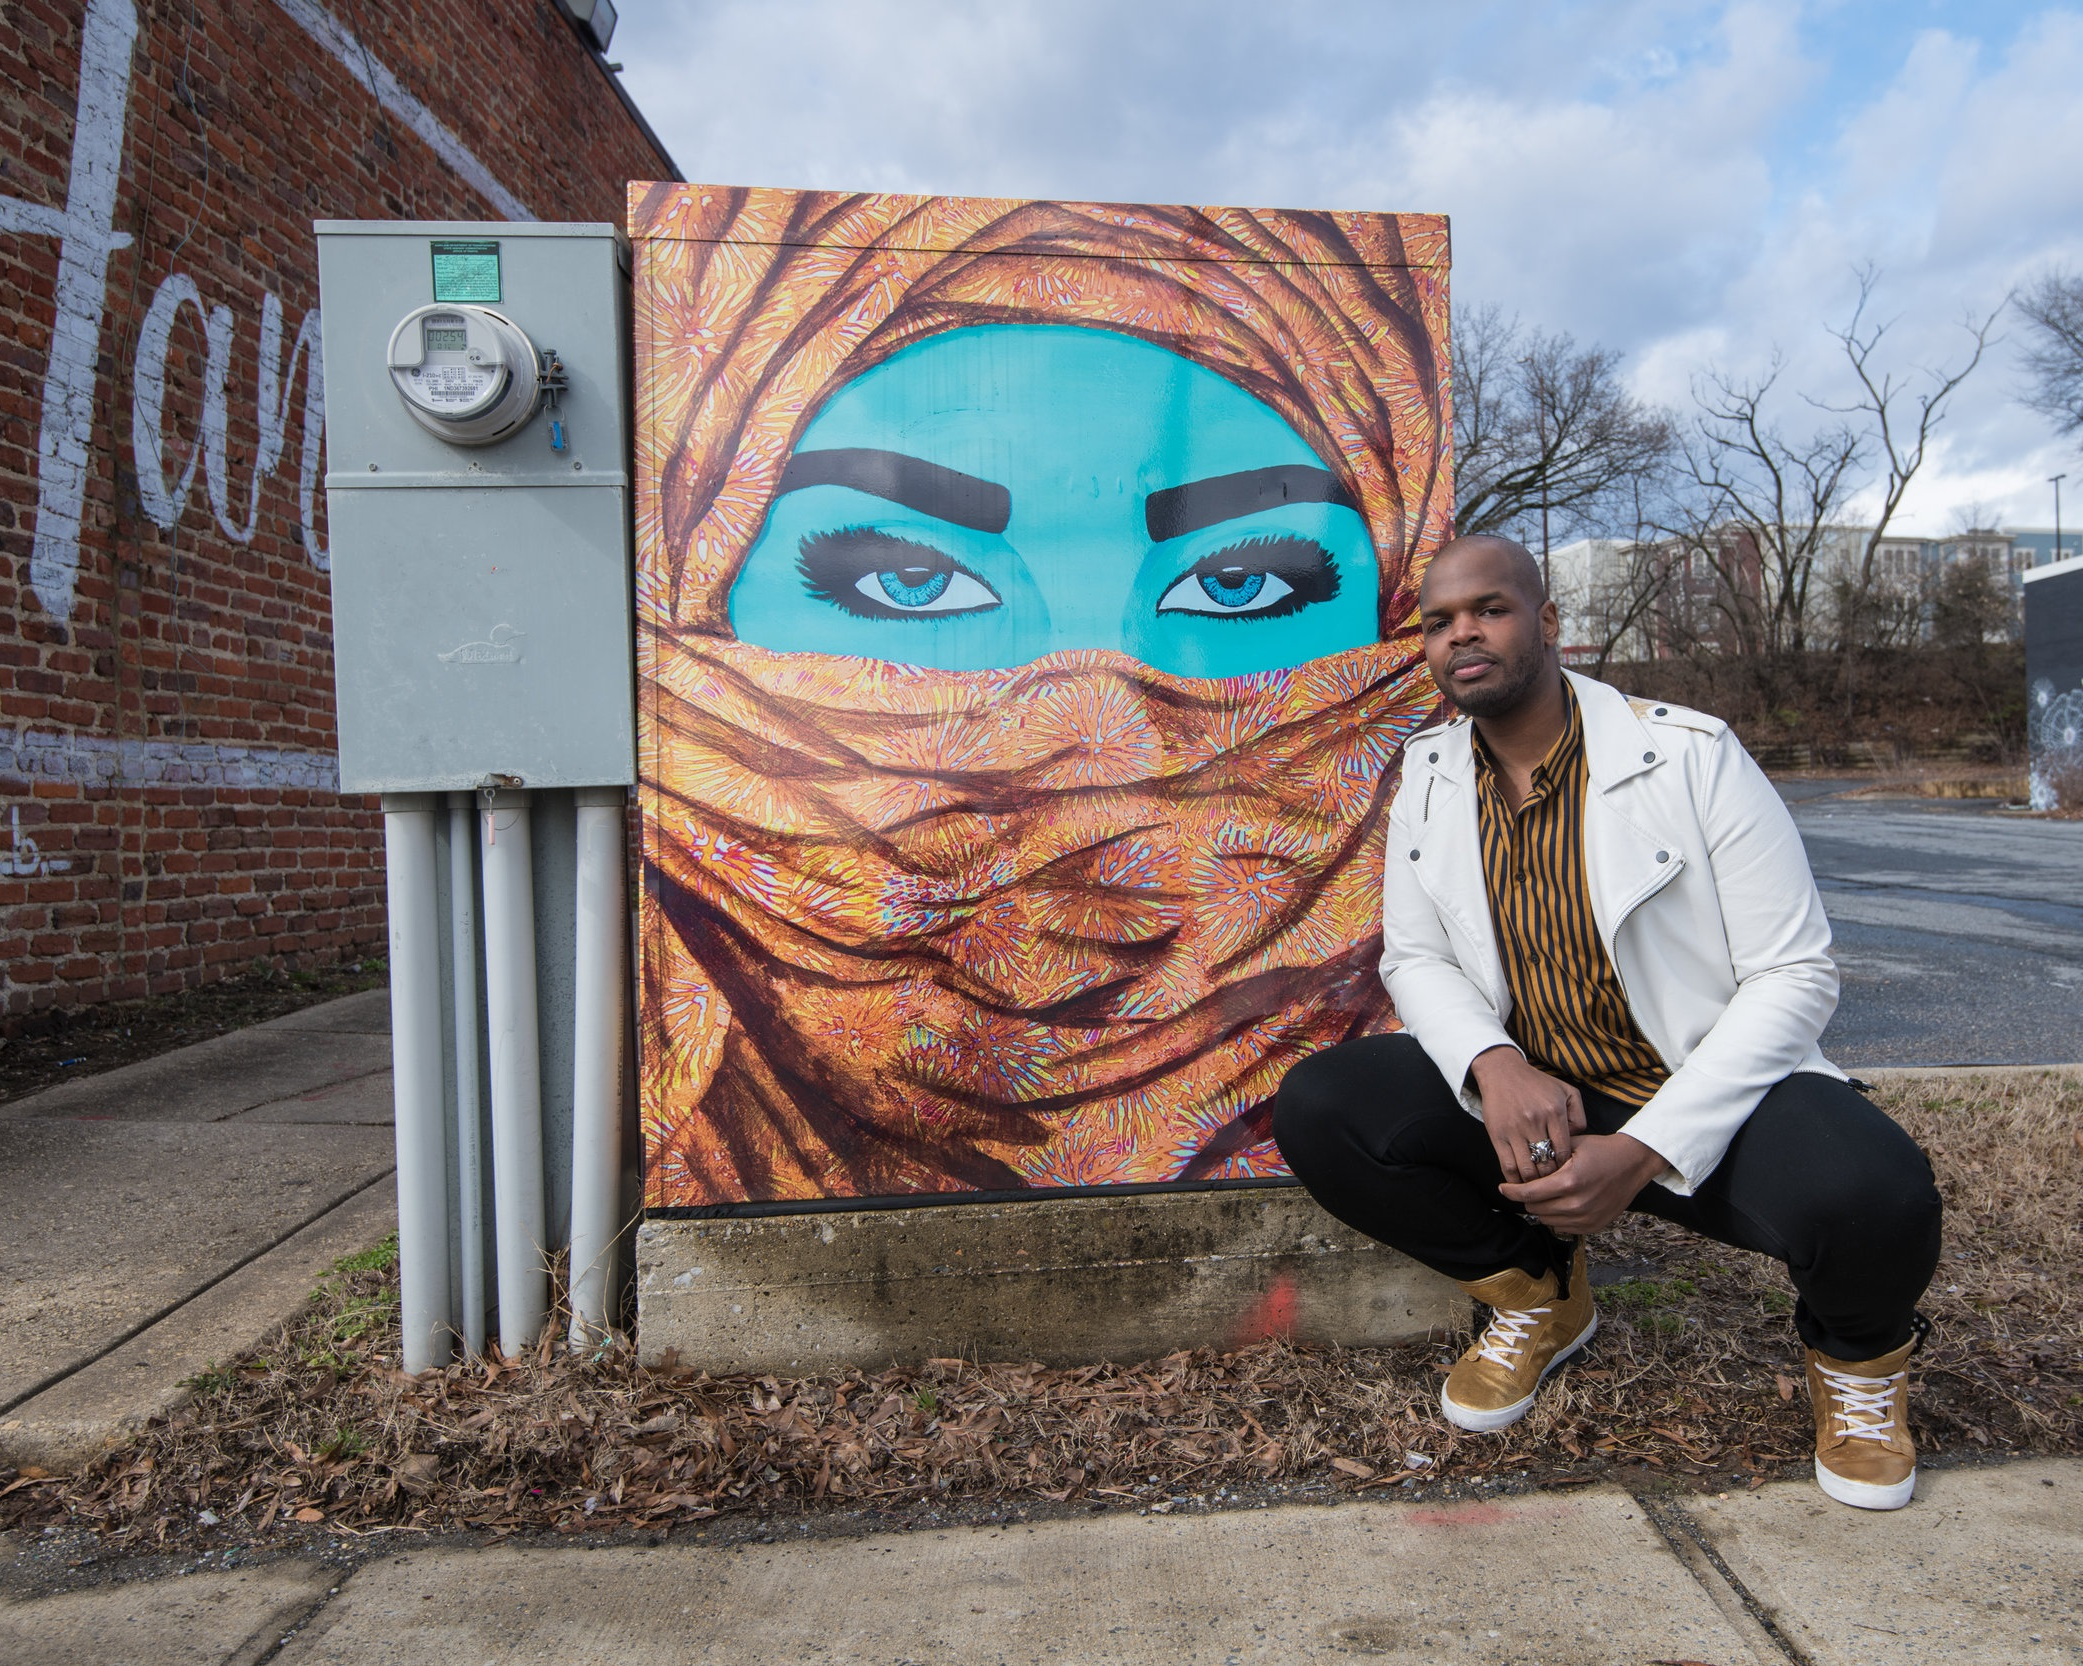 rashad-ali-muhammad-maryland-artist-hyattsvile-traffic-box-art2